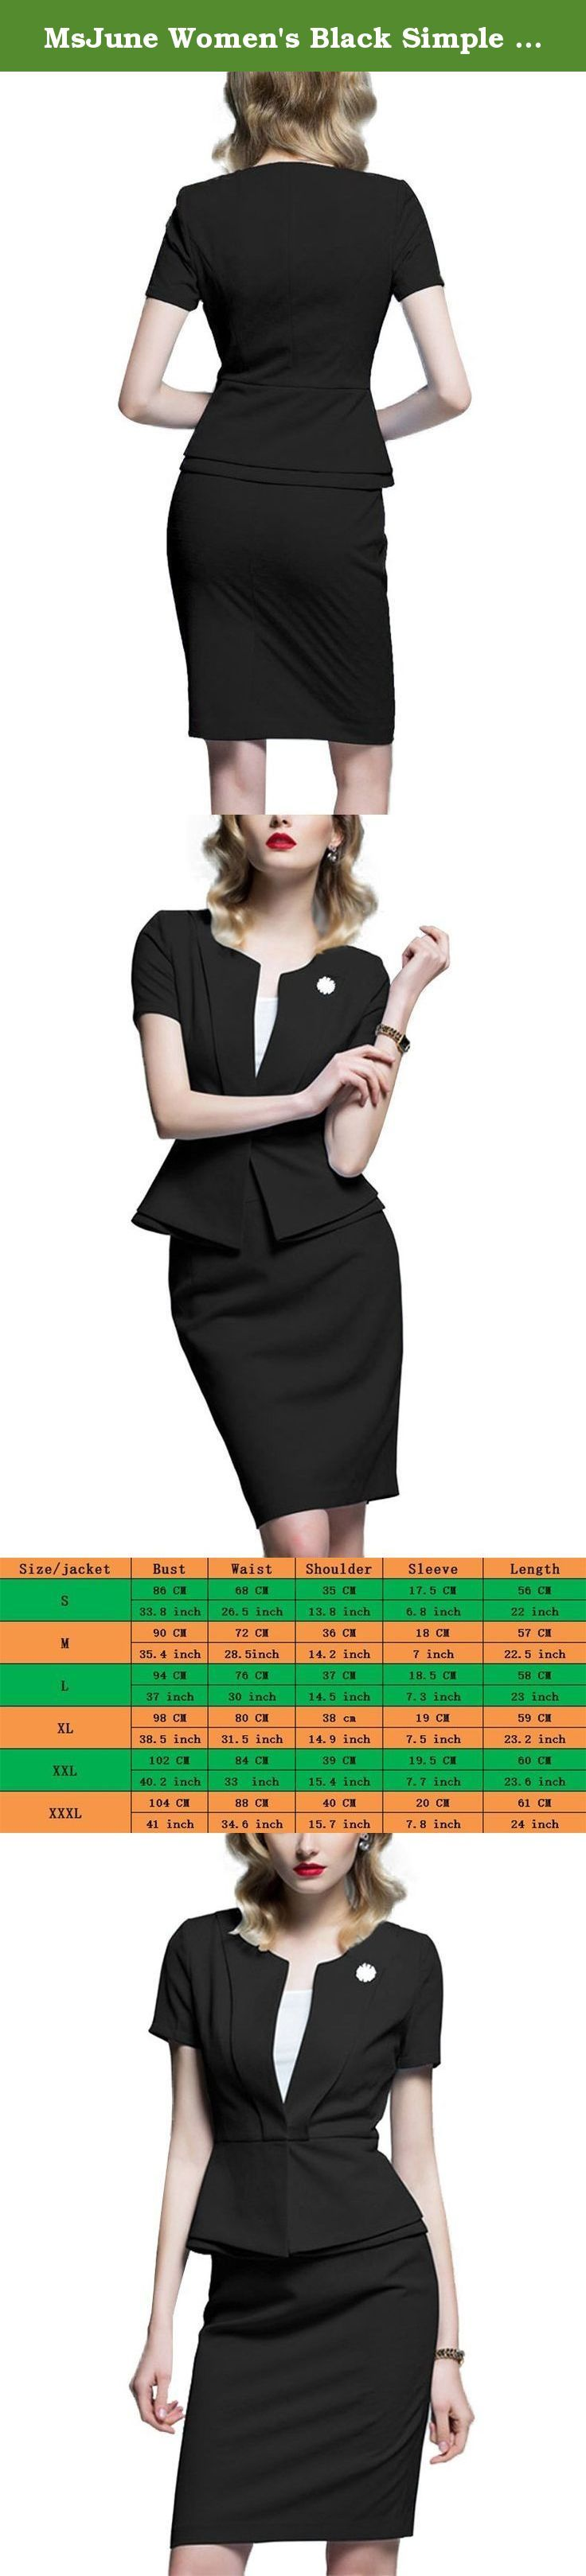 MsJune Women's Black Simple Elegant Business Bodycon Peplum Midi Party Dress. Women's Suit Dress Imported 100% Polyester Scoop Neckline,Short Sleeves,Peplum Knee-length Bussiness Dress Available In Size:S,M,L,XL,XXL,XXXL Available In Colors:Black,Light Sky Blue Soft and Comortable Material Please Note:Our Size is Different from Amazon Average Size,Please Order the Dress According to Our Size Chart. Please Note:The Actual Color May Vary Slightly from the Picture Because of Lighting Effects...